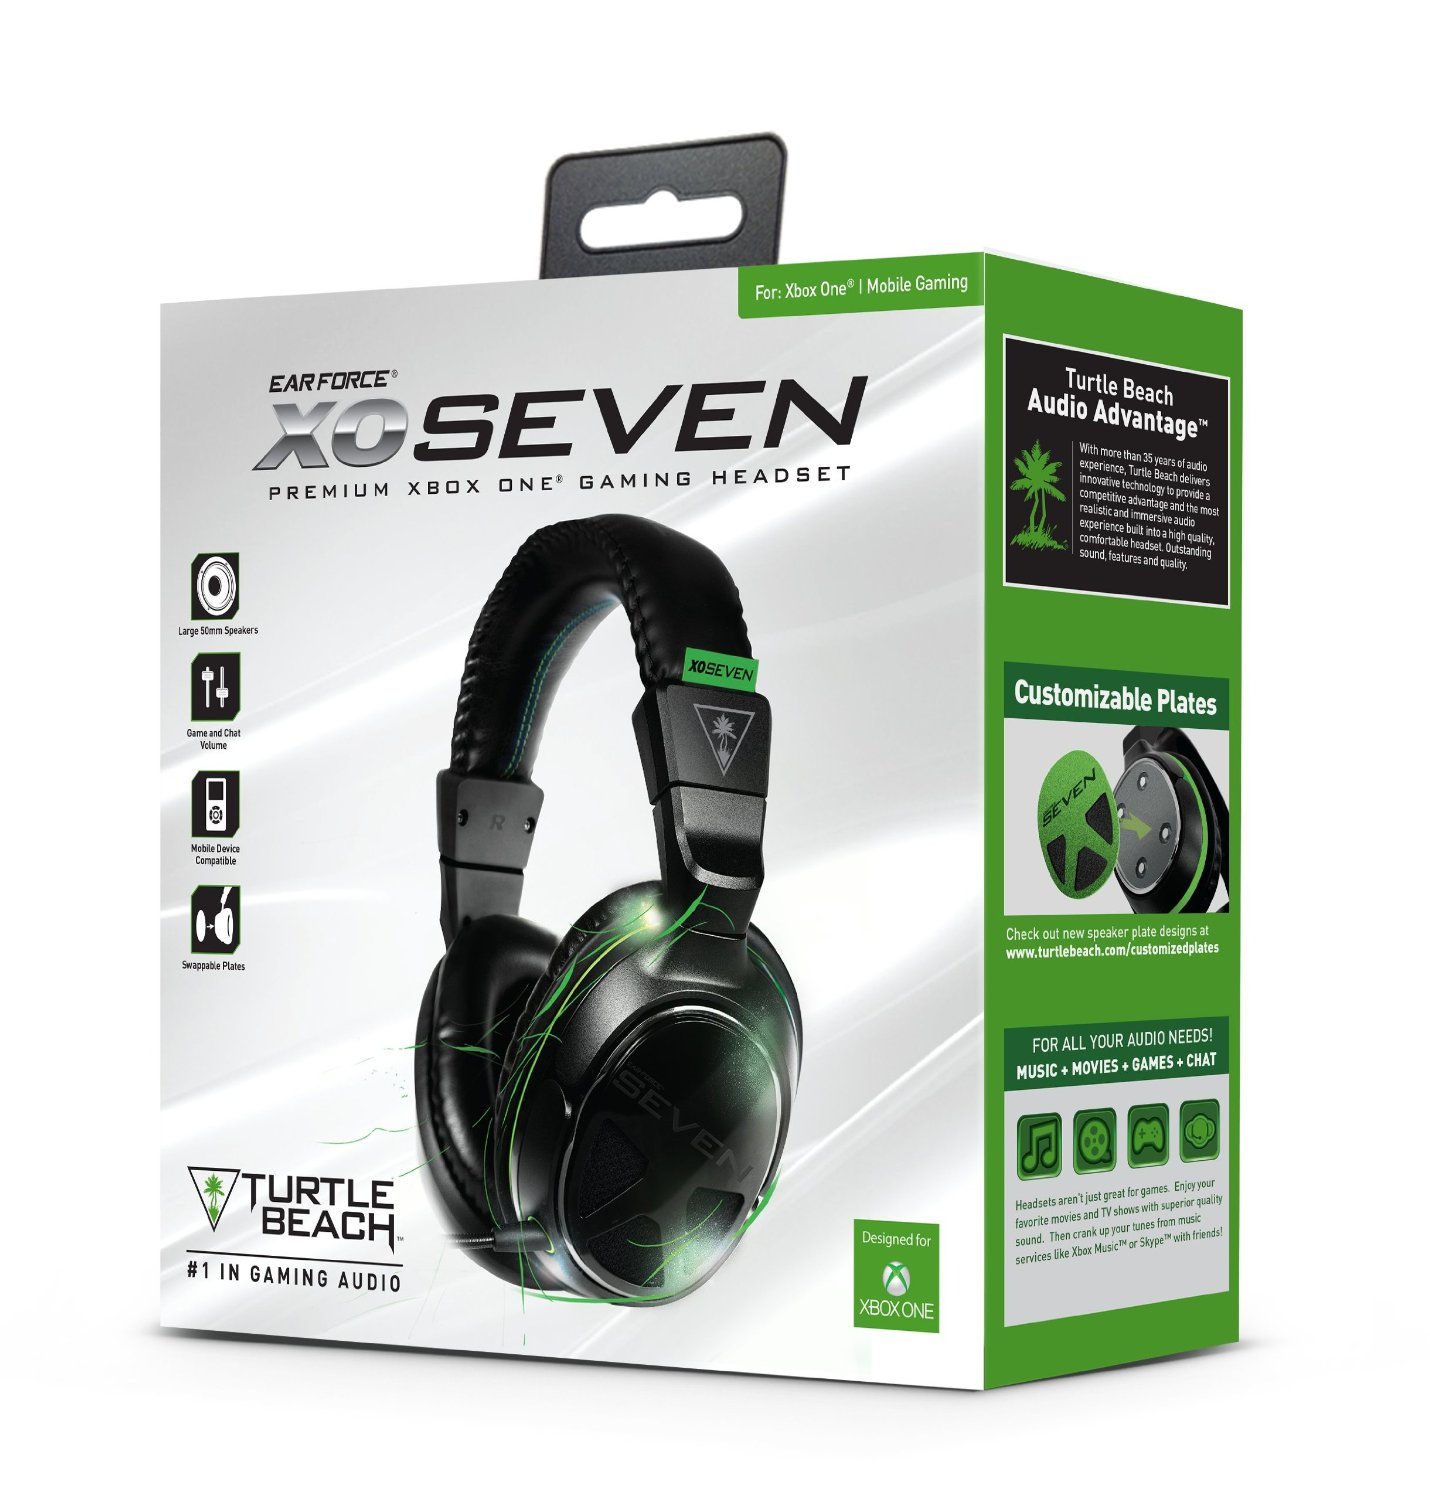 Turtle Beach Ear Force XO7 Headset Xbox One Review